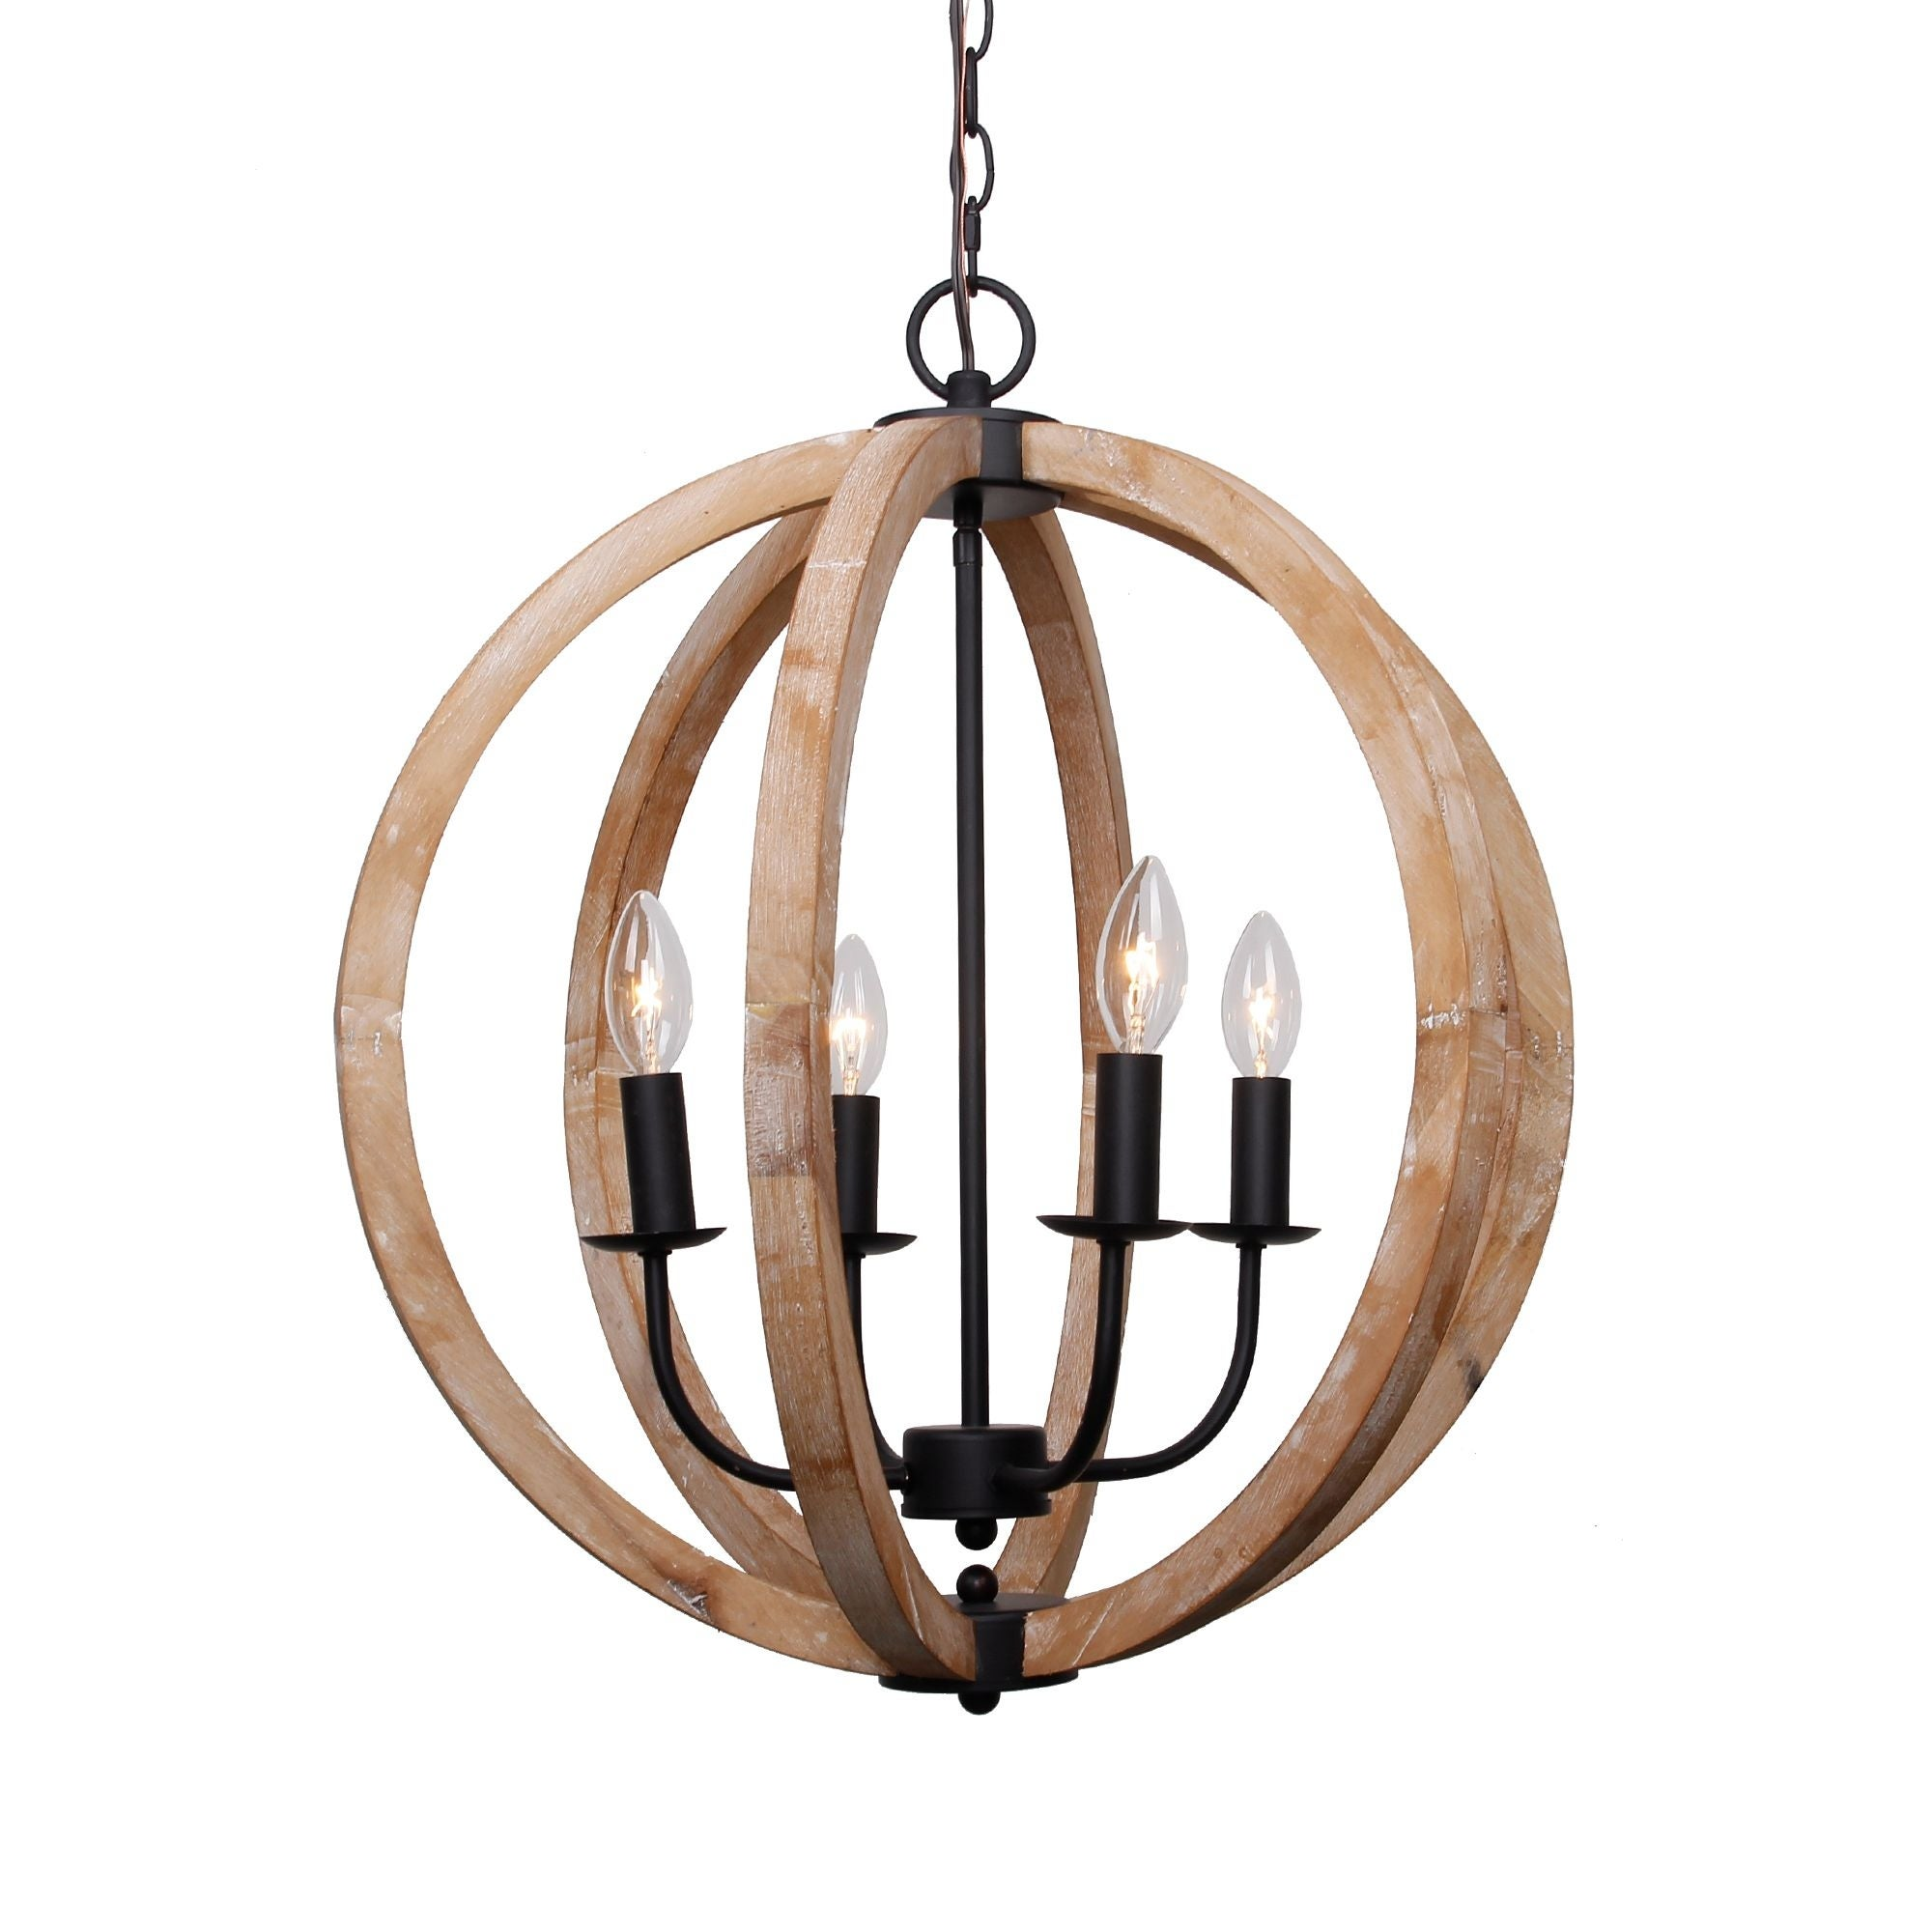 Antique 4 Light Distressed Wood Orb Chandelier Free Shipping Today 20577238